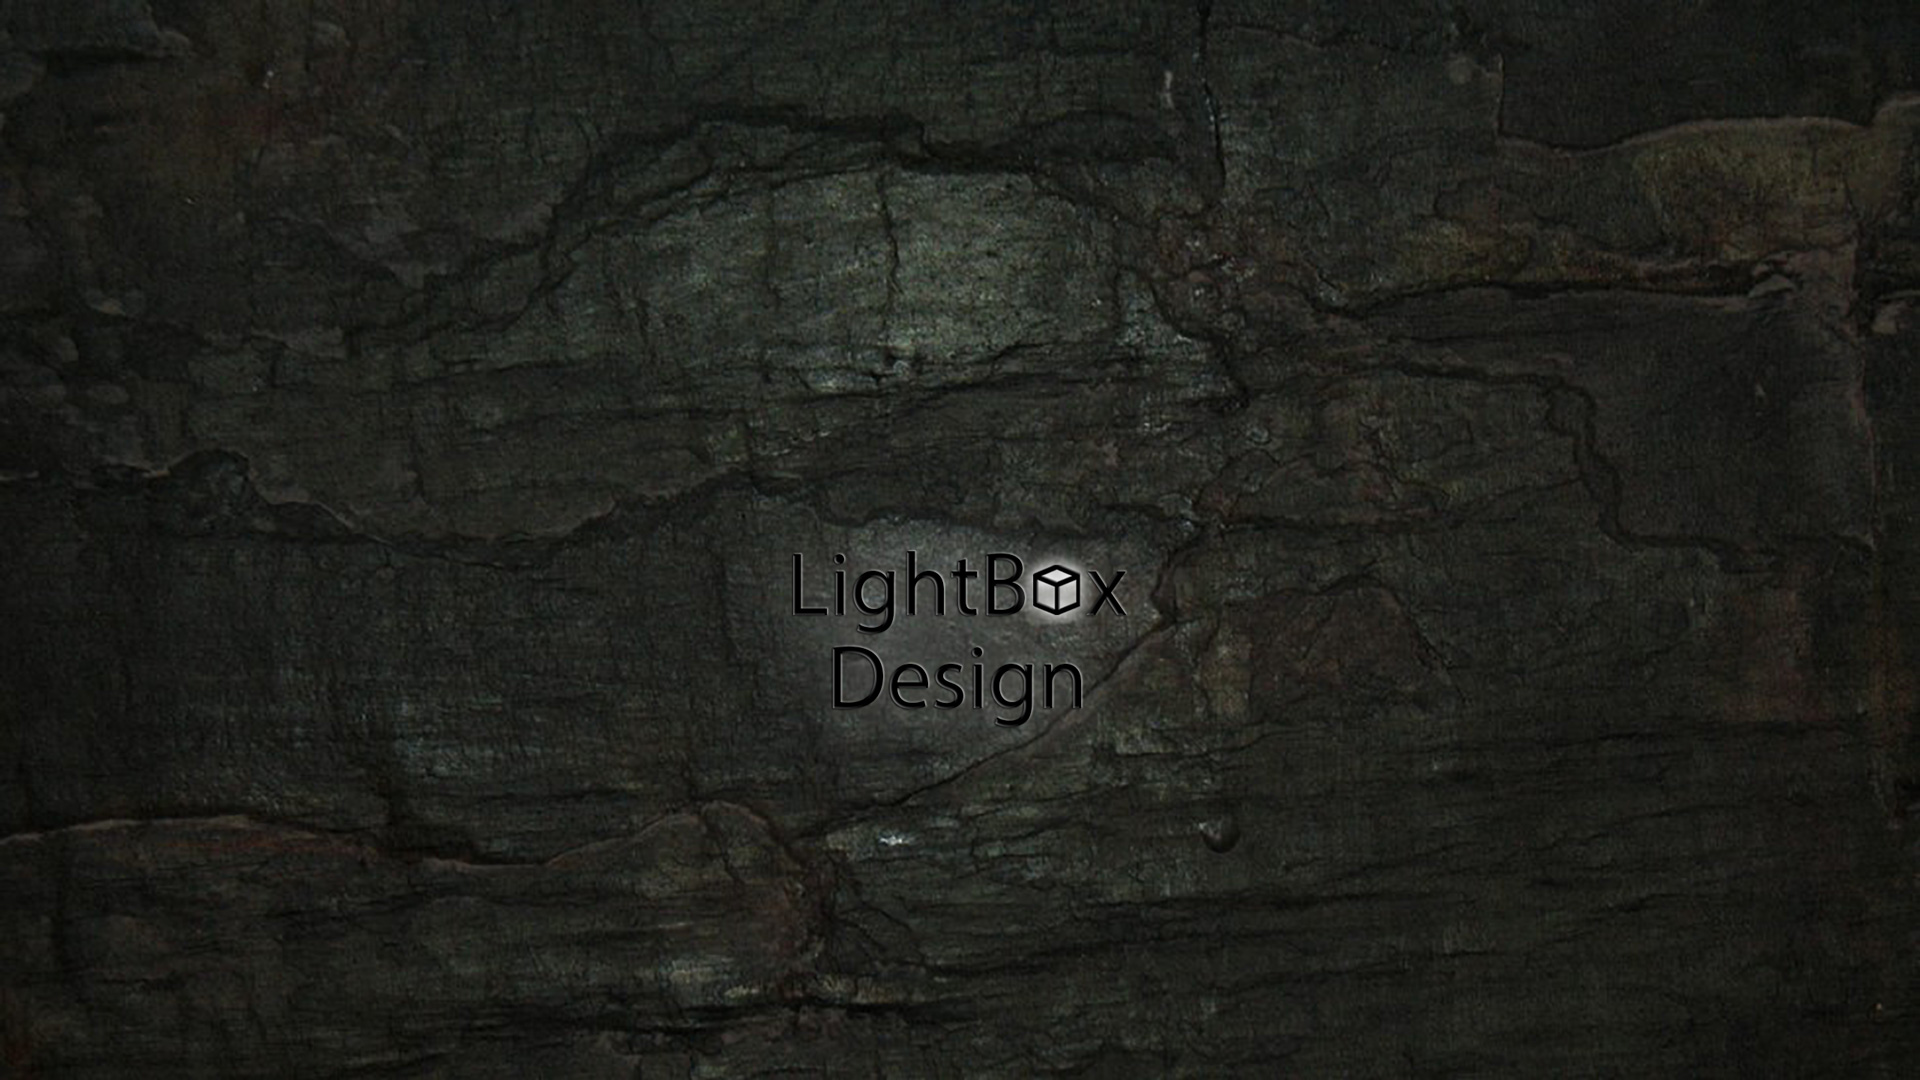 LightBox Design Logo